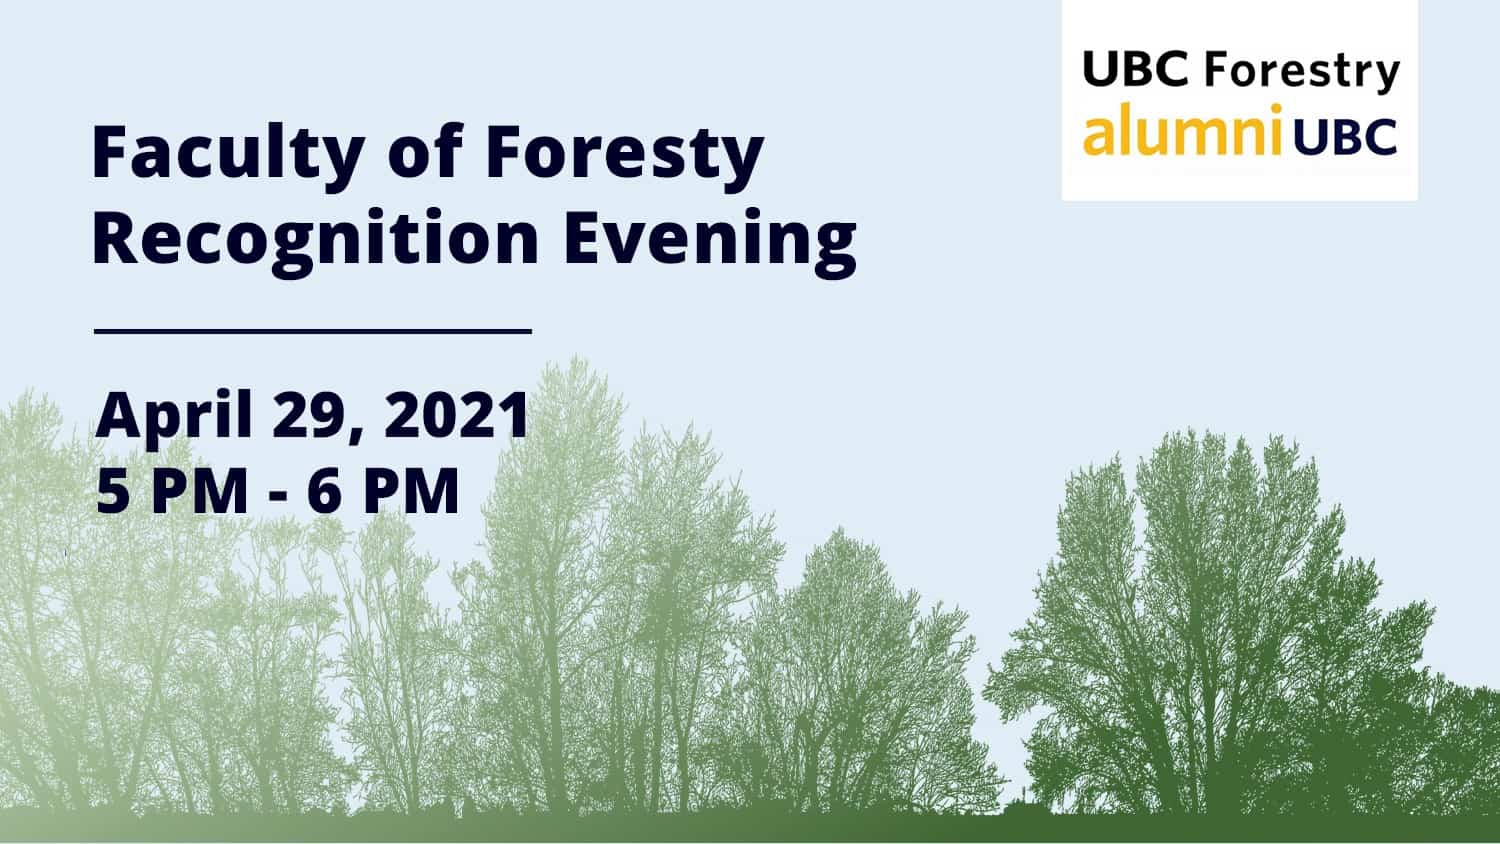 Faculty of Forestry Recognition Evening